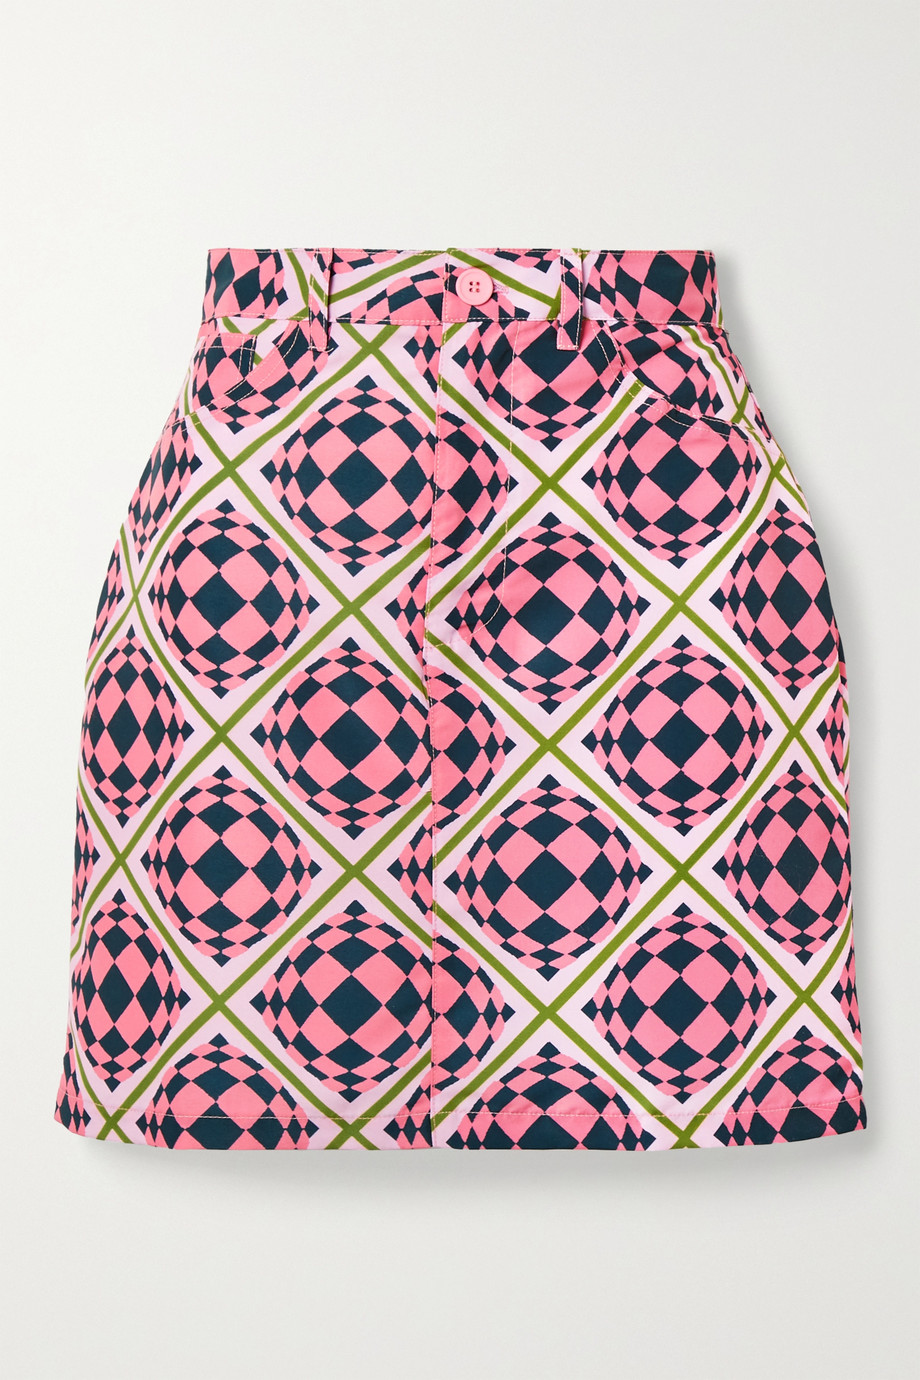 Maisie Wilen Primetime printed shell mini skirt